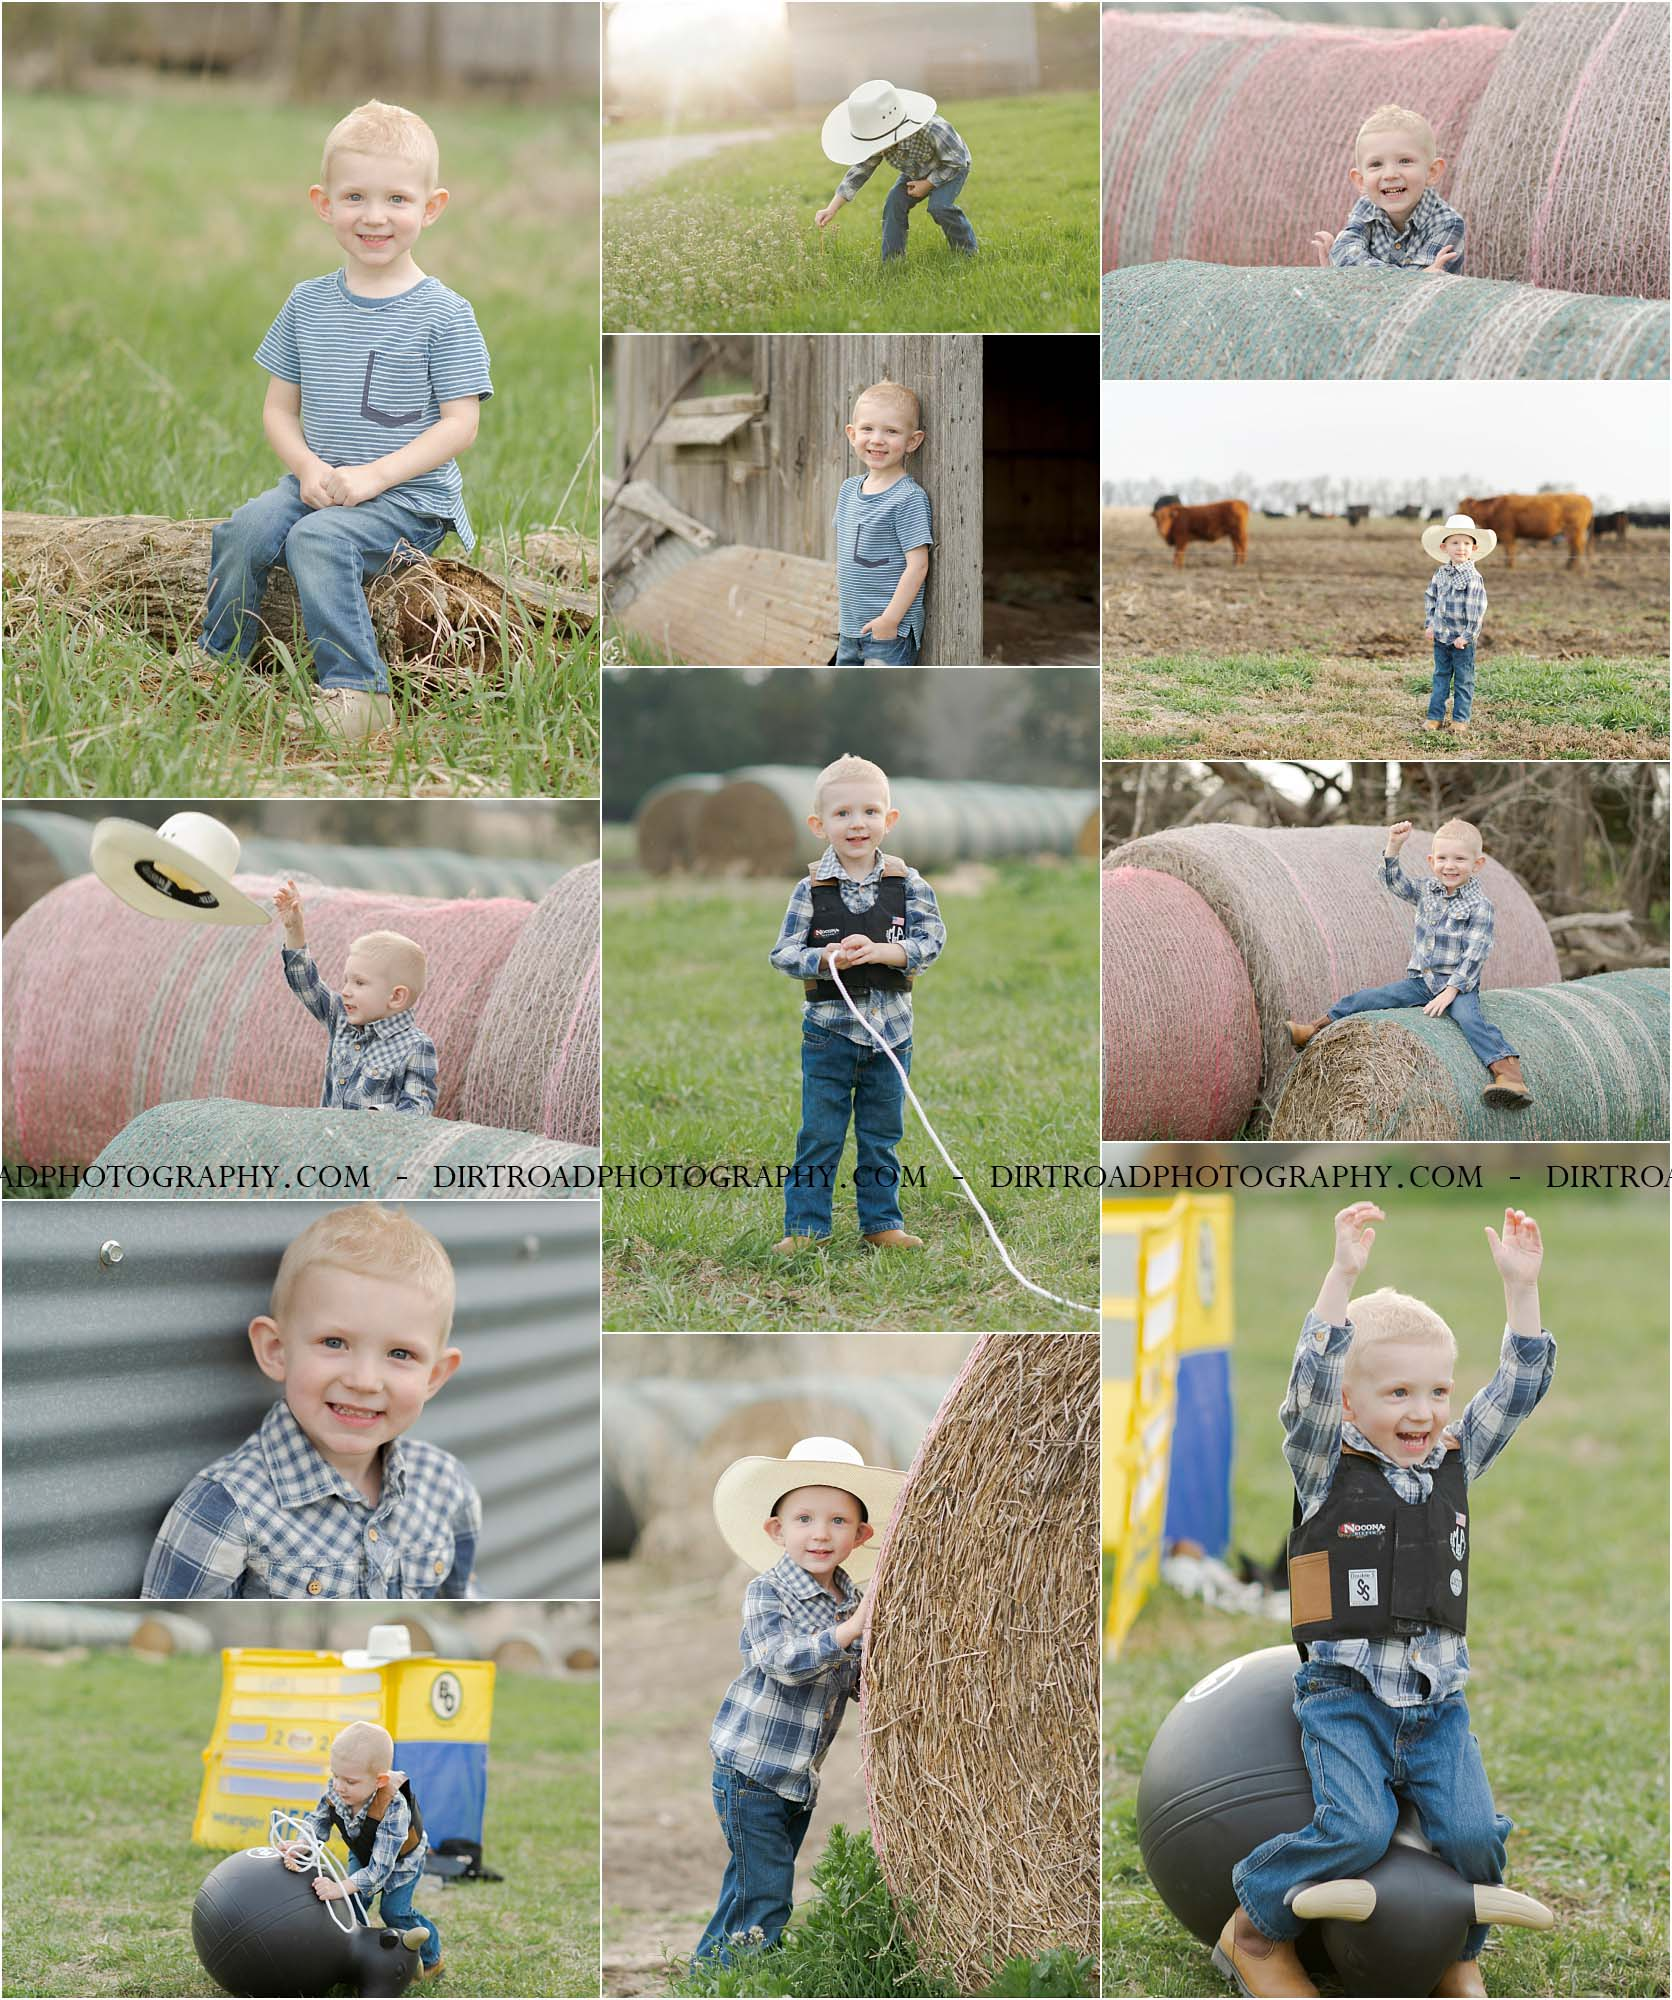 picture of three year old boy in plaid button up shirt and wrangler jeans with cowboy boots sitting on a hay bale wrapped with red twine. grayden lester is celebrating his third birthday on the farm with his cowboy hat, buckin bull chute, bouncy ball bull, chaps, bull rider vest and rope. photo taken by dirt road photography at sunset near dorchester nebraska.